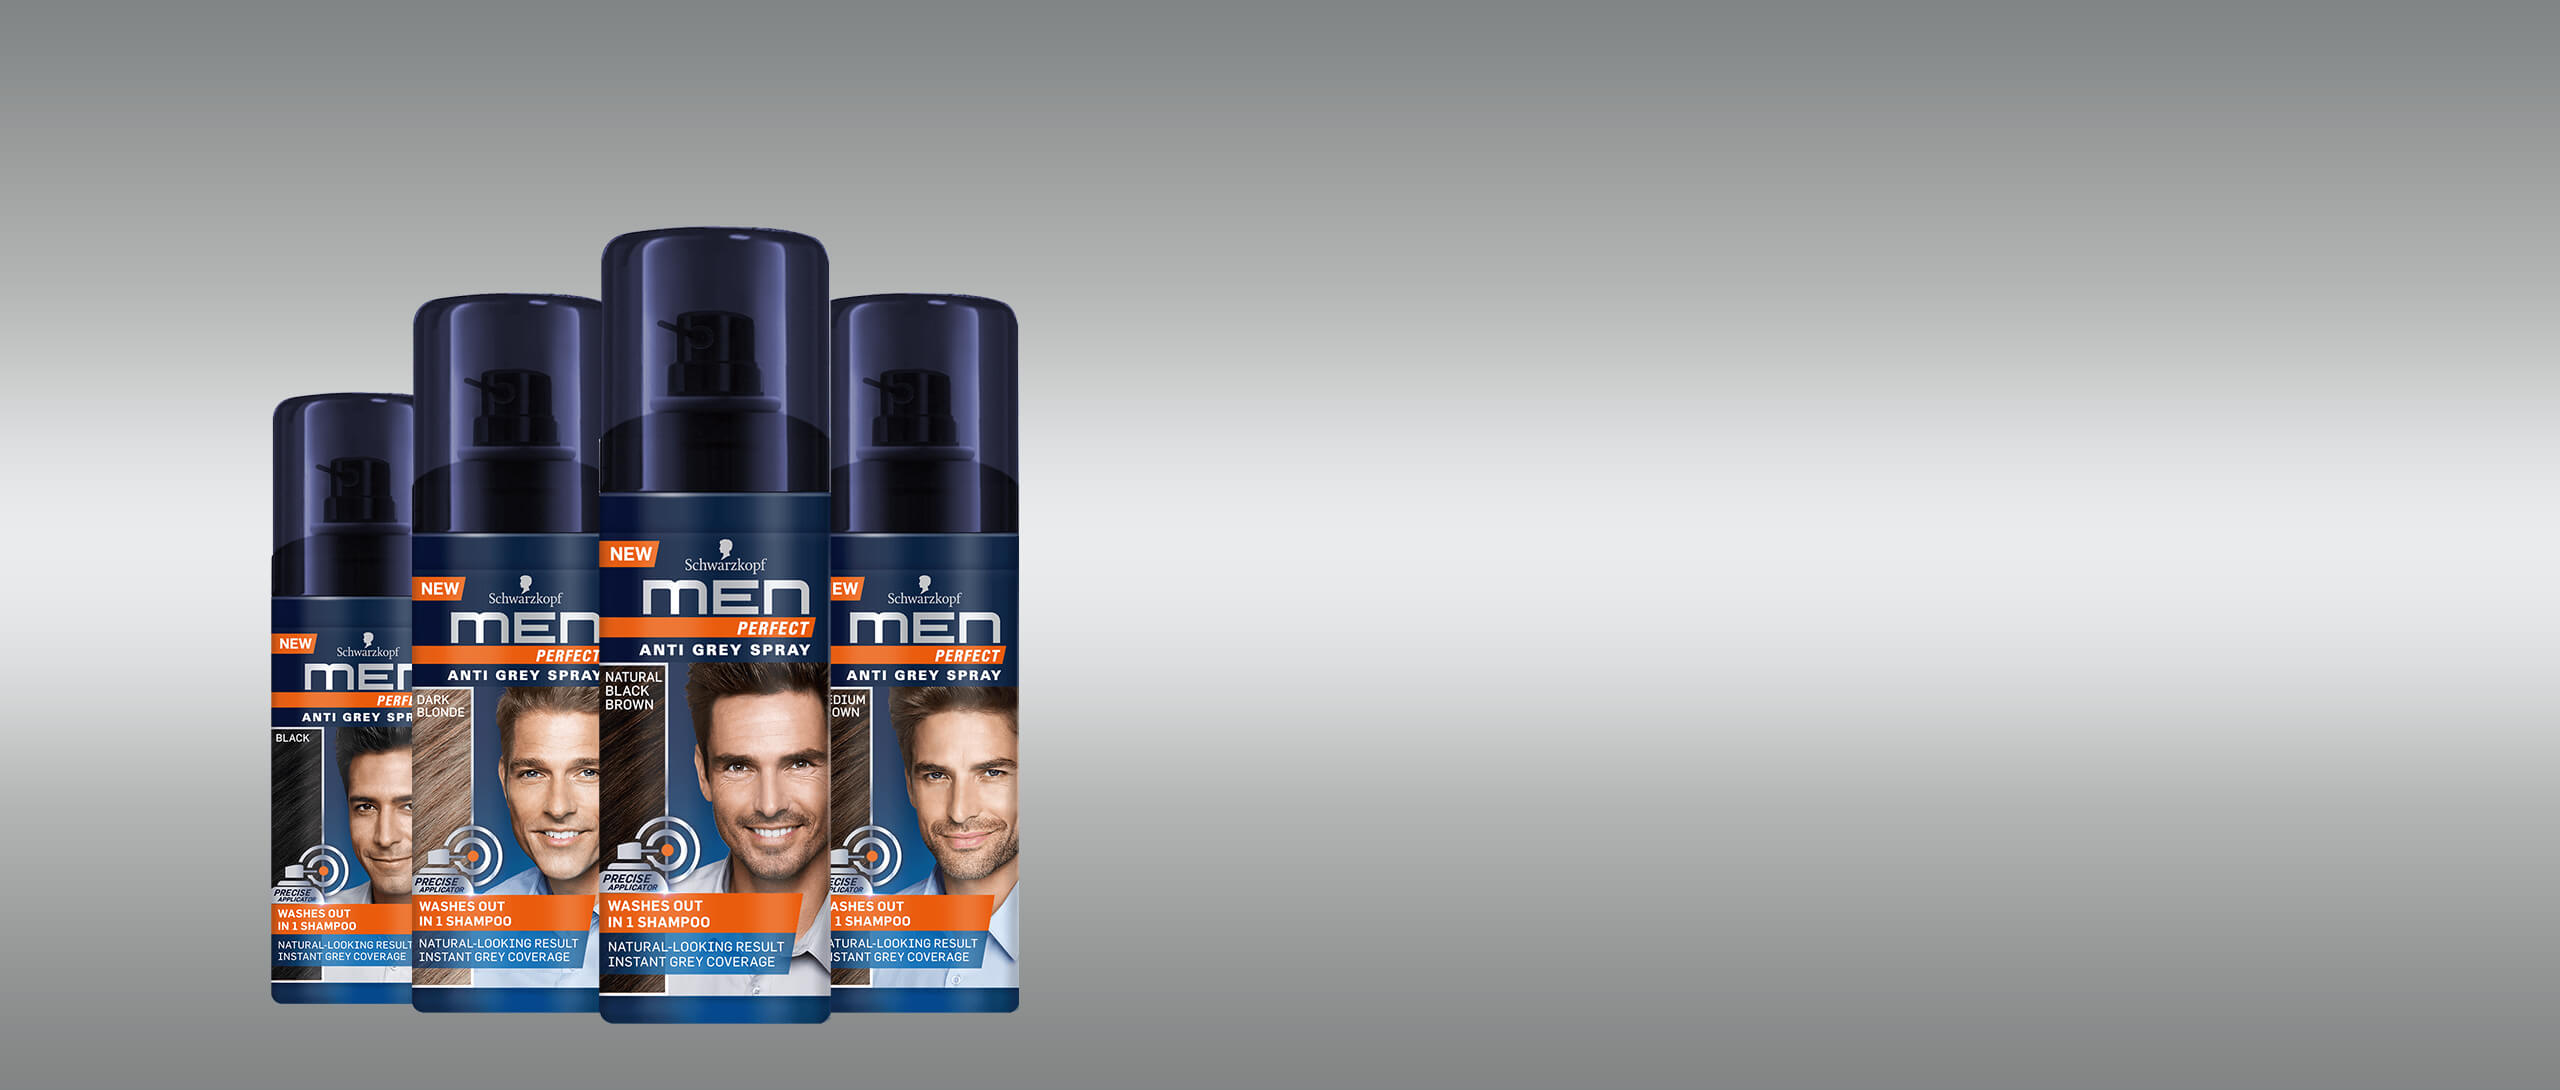 men_perfect_com_news_grey_color_gel_spray_range_2560x1090